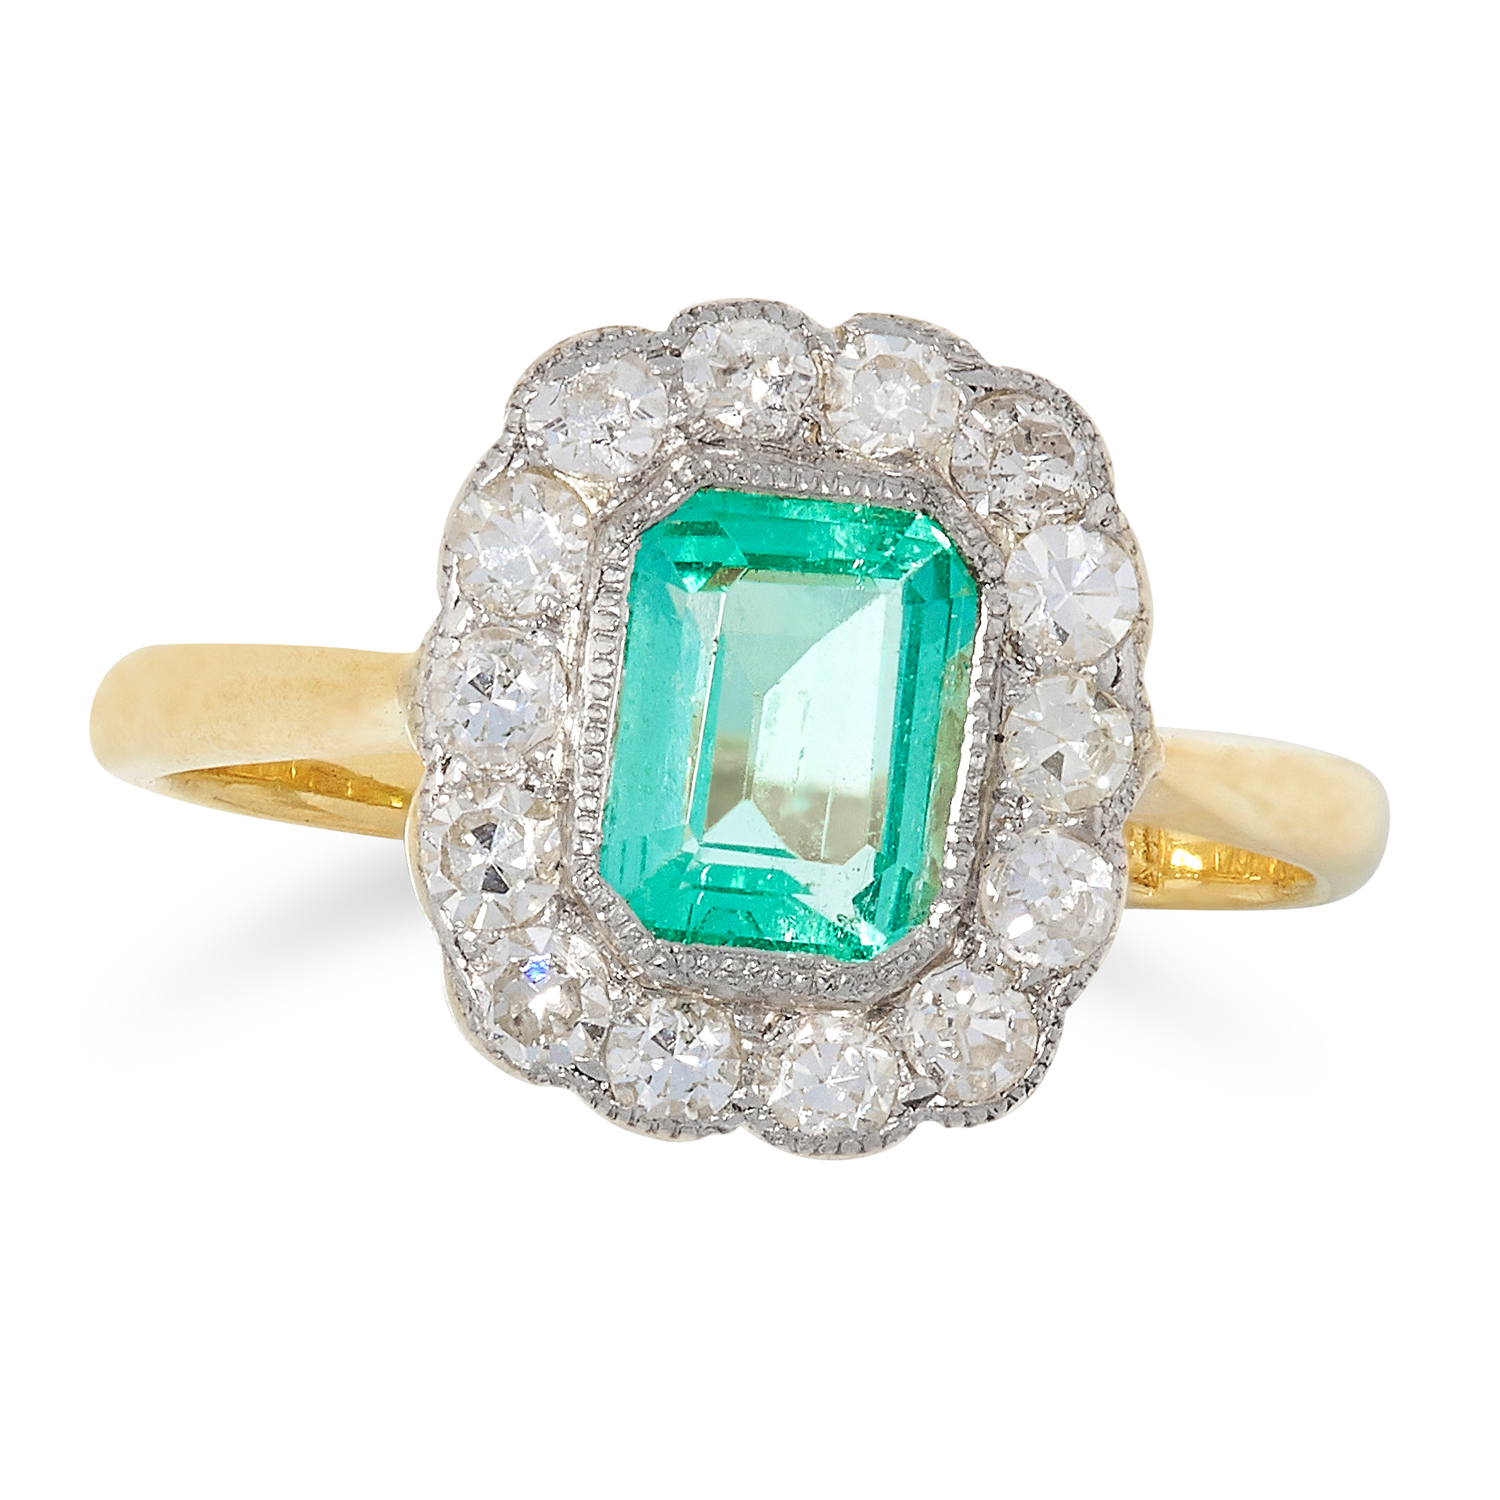 EMERALD AND DIAMOND CLUSTER RING set with an emerald cut emerald in a border of round cut